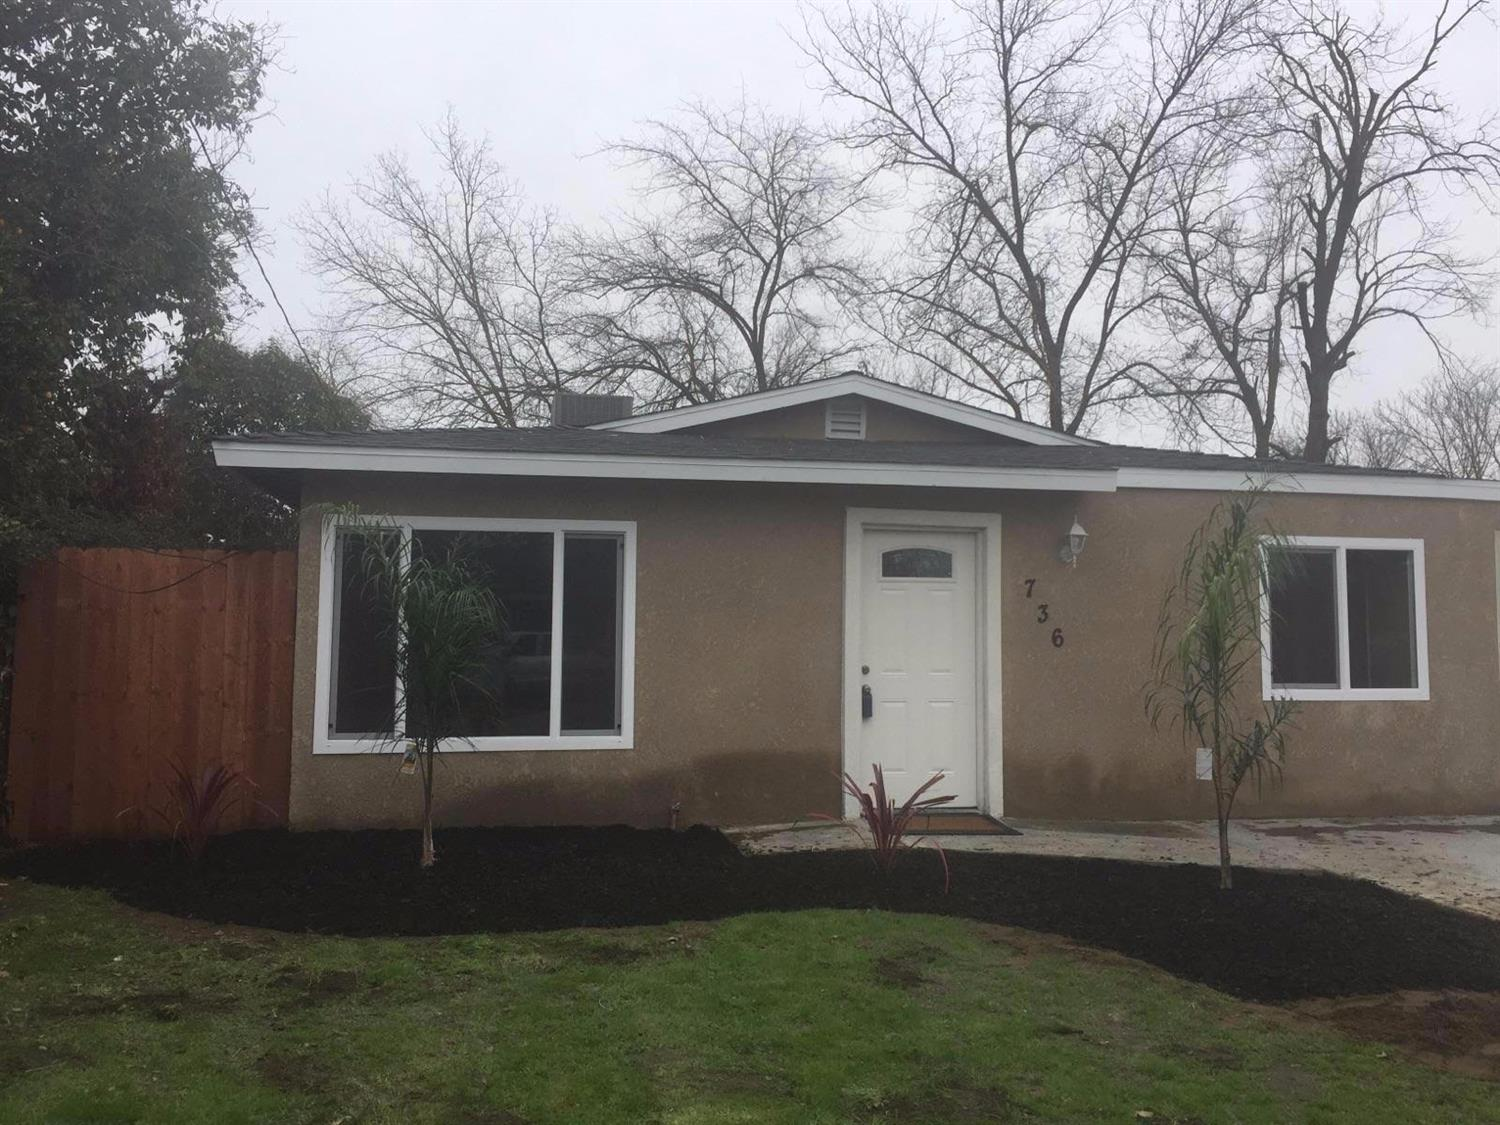 736 Washington Ave, Madera, CA 93638